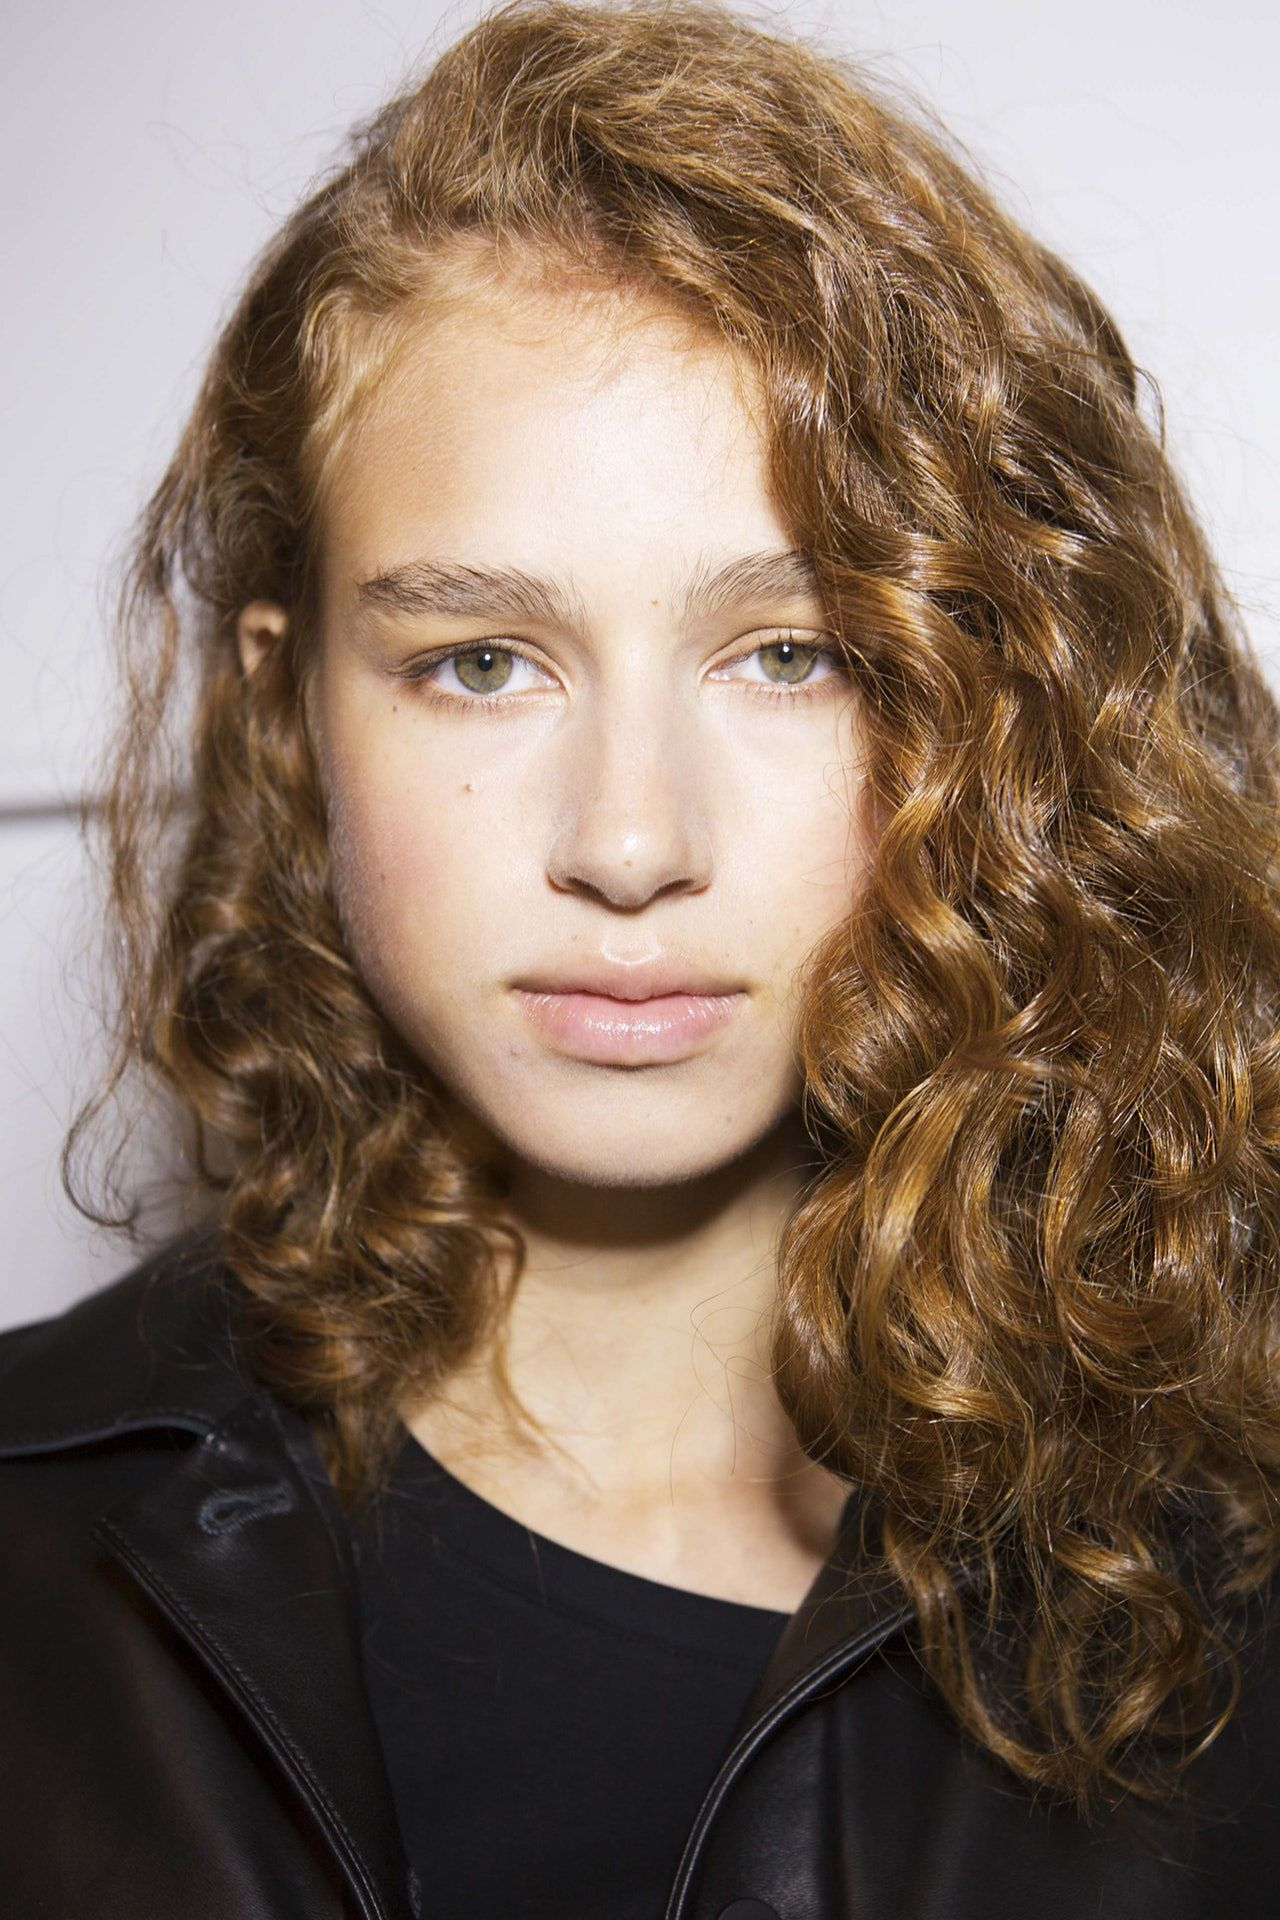 How To Revive Second Day Curls According To Pros Curly Hair Styles Dry Curls Curly Hair Styles Naturally